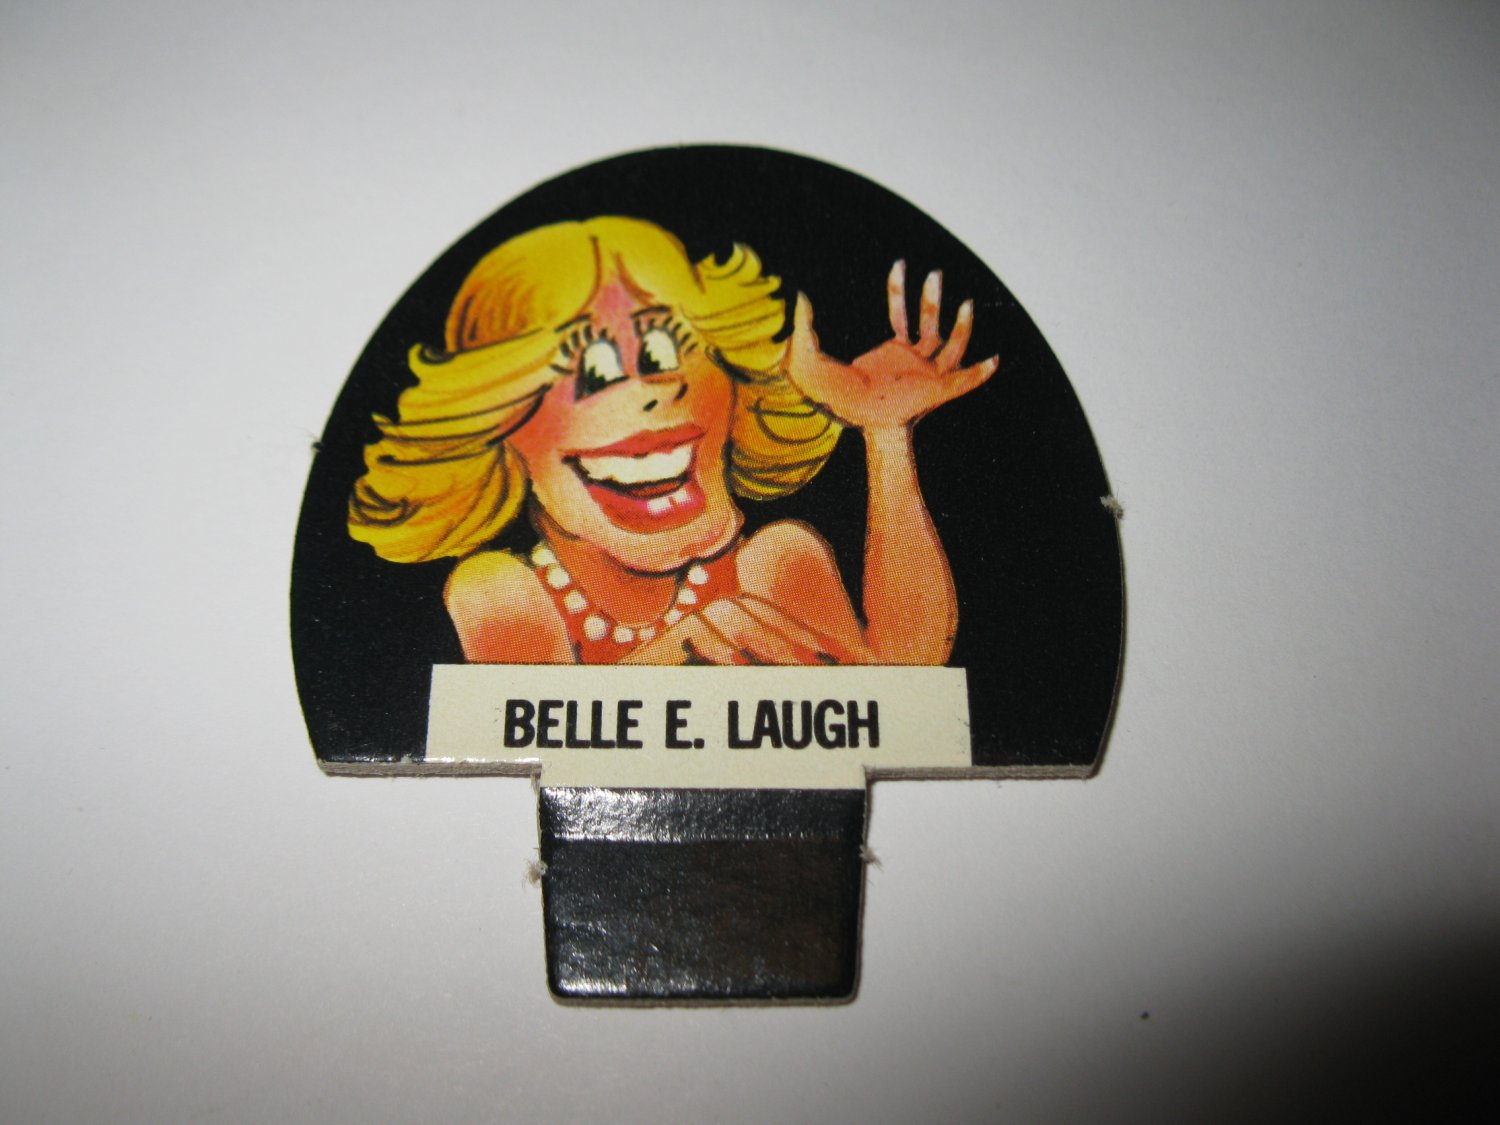 1986 Hollywood Squares Board Game Piece: Belle E. Laugh Player tab